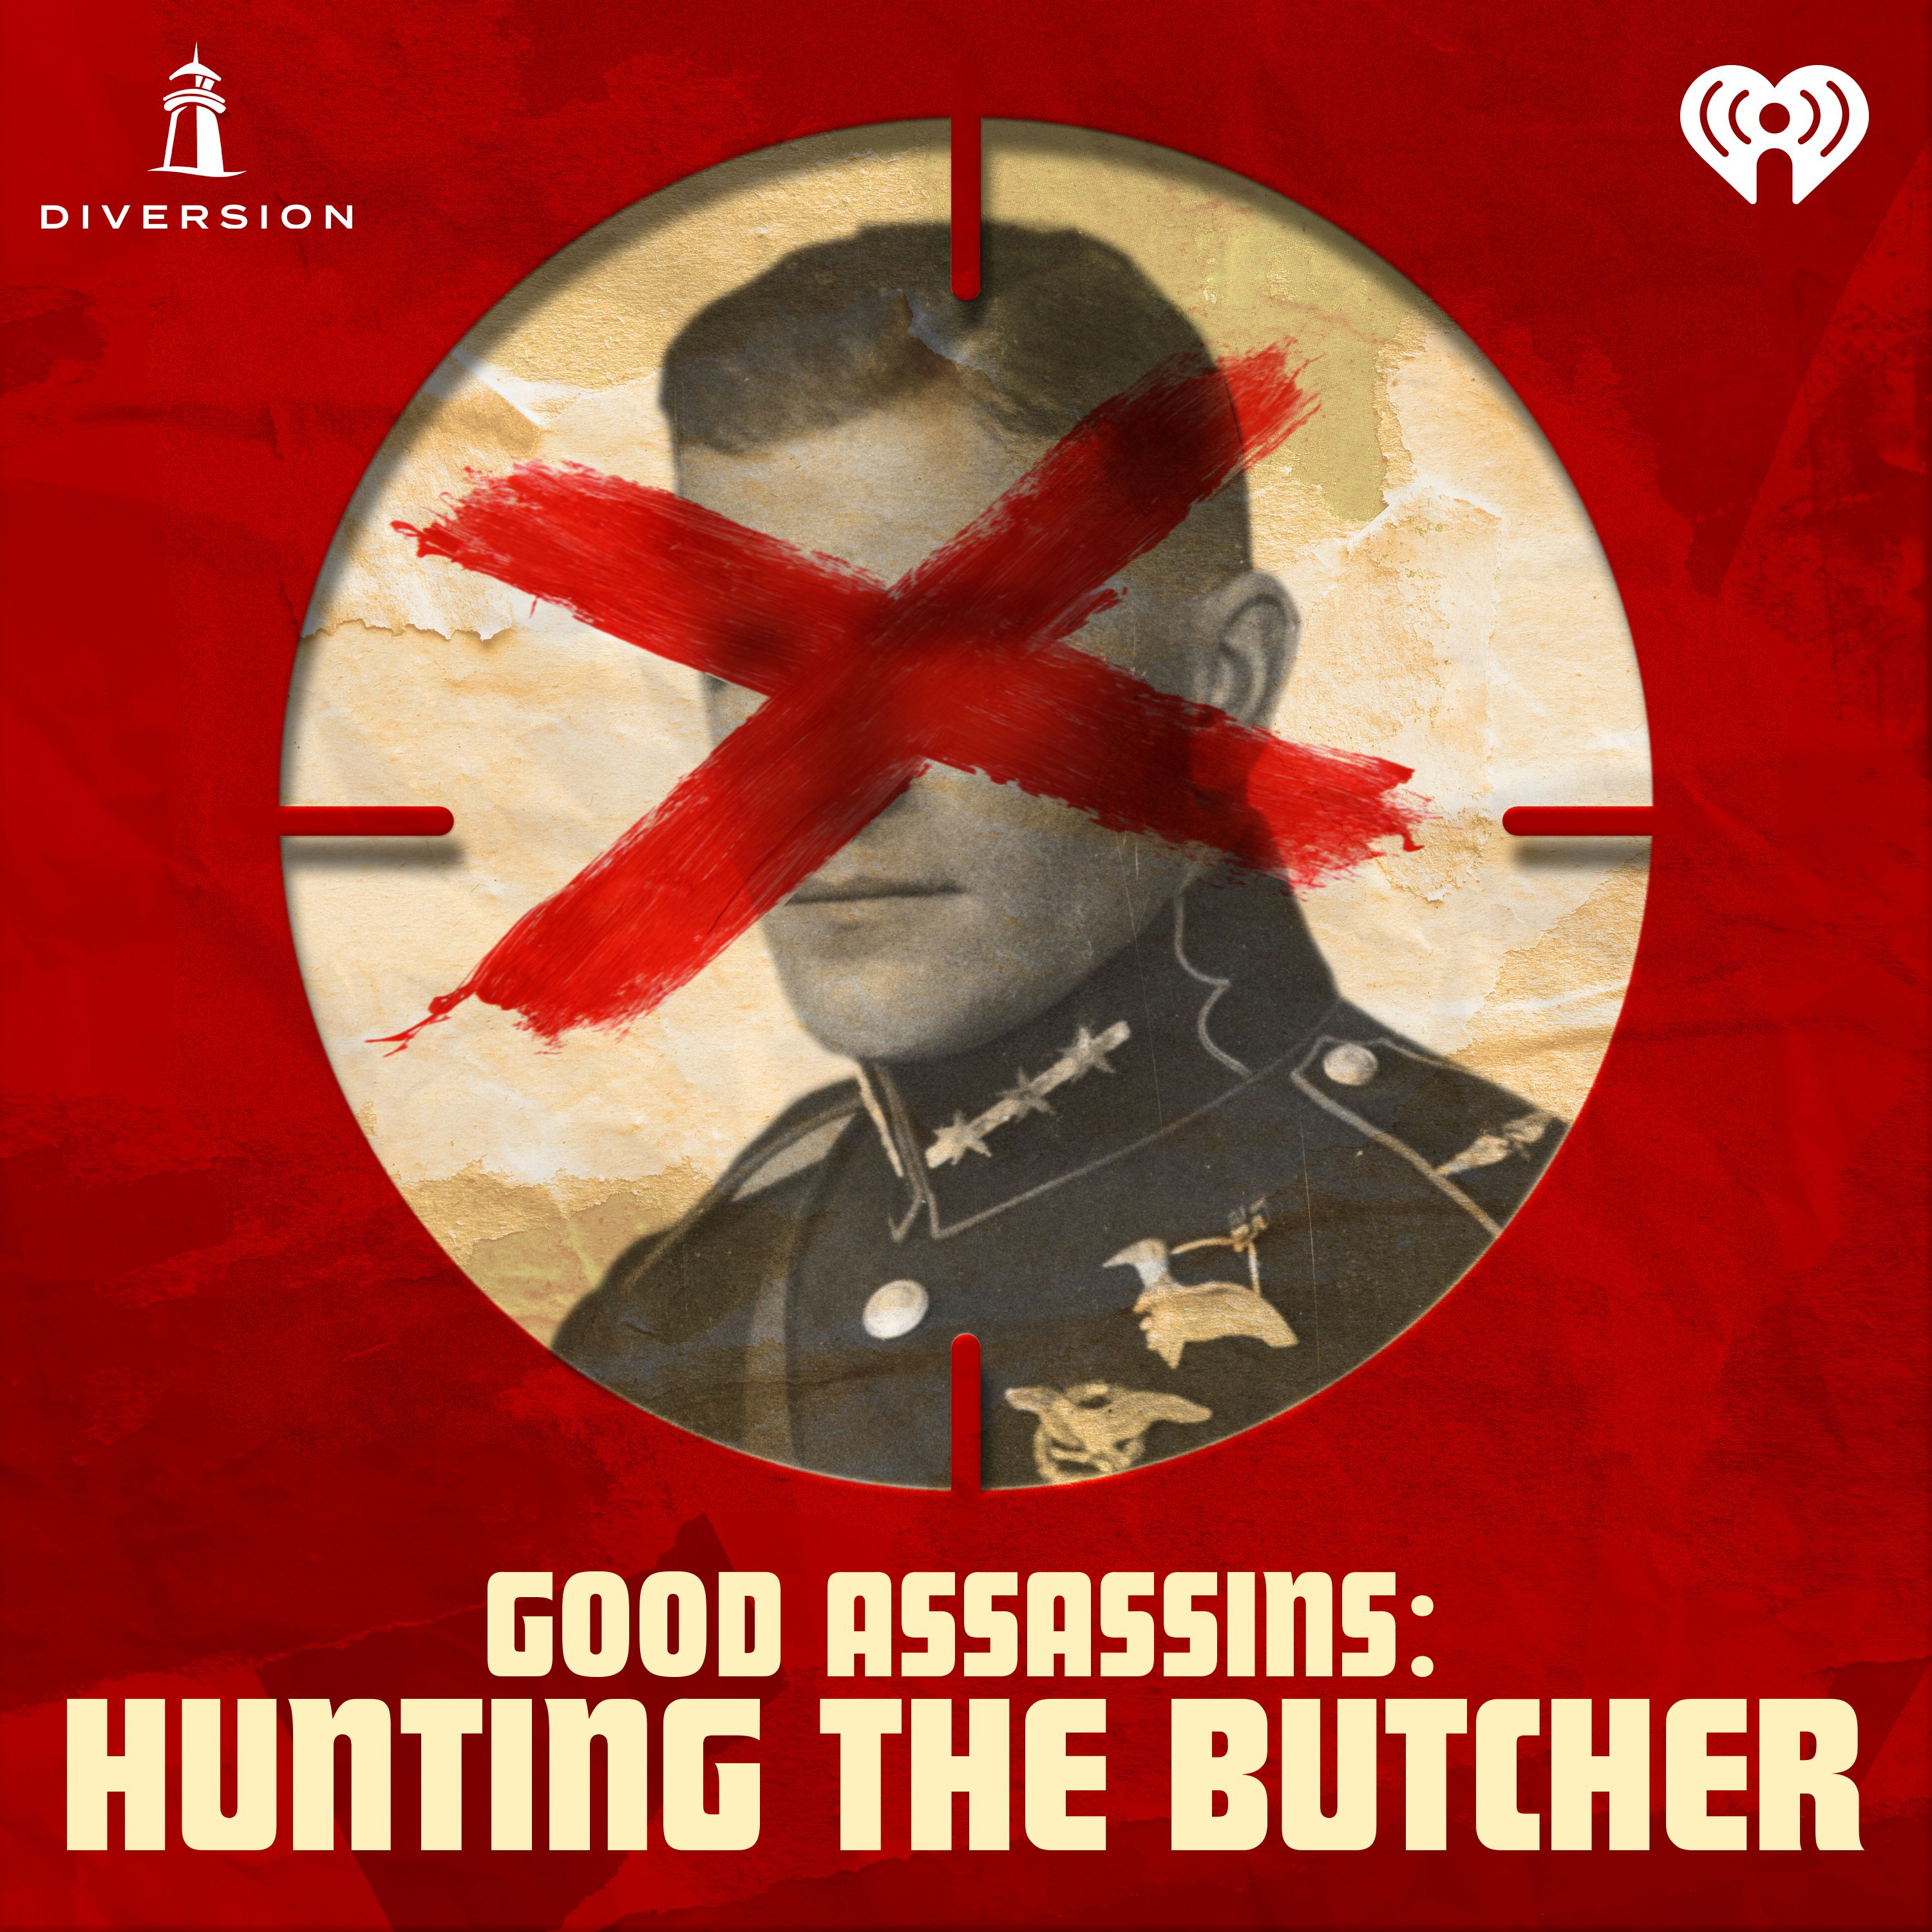 Introducing Good Assassins: Hunting the Butcher